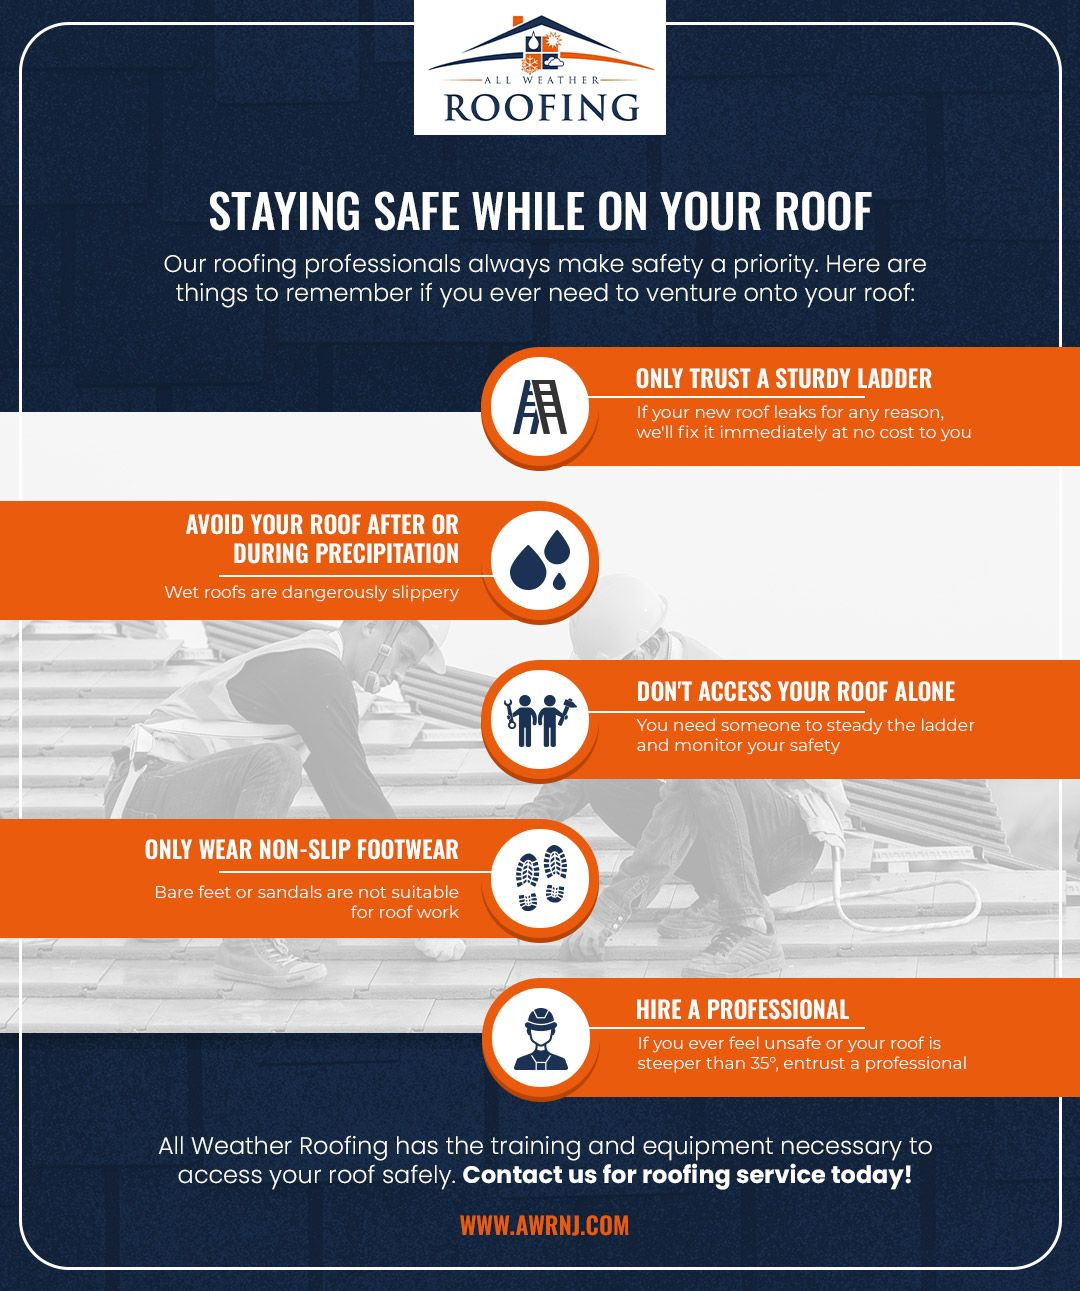 Staying Safe While On Your Roof.jpg